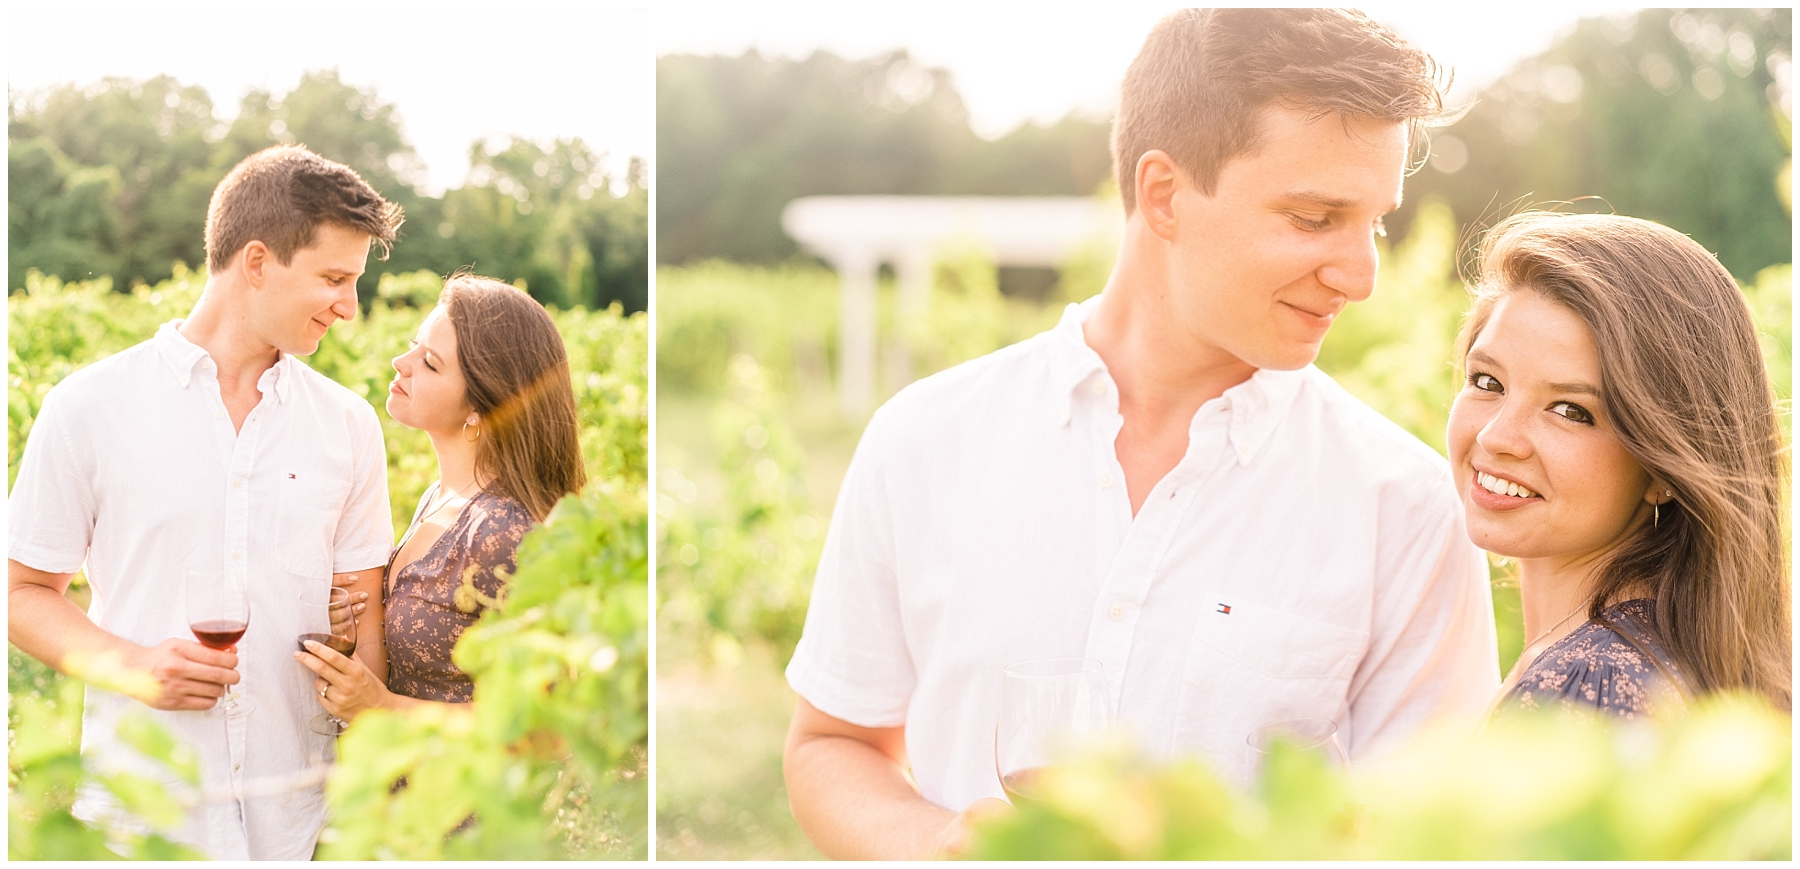 lafayette indiana engagement photography lake michigan vineyard winery wedding photographer elopement destination wedding (14).jpg